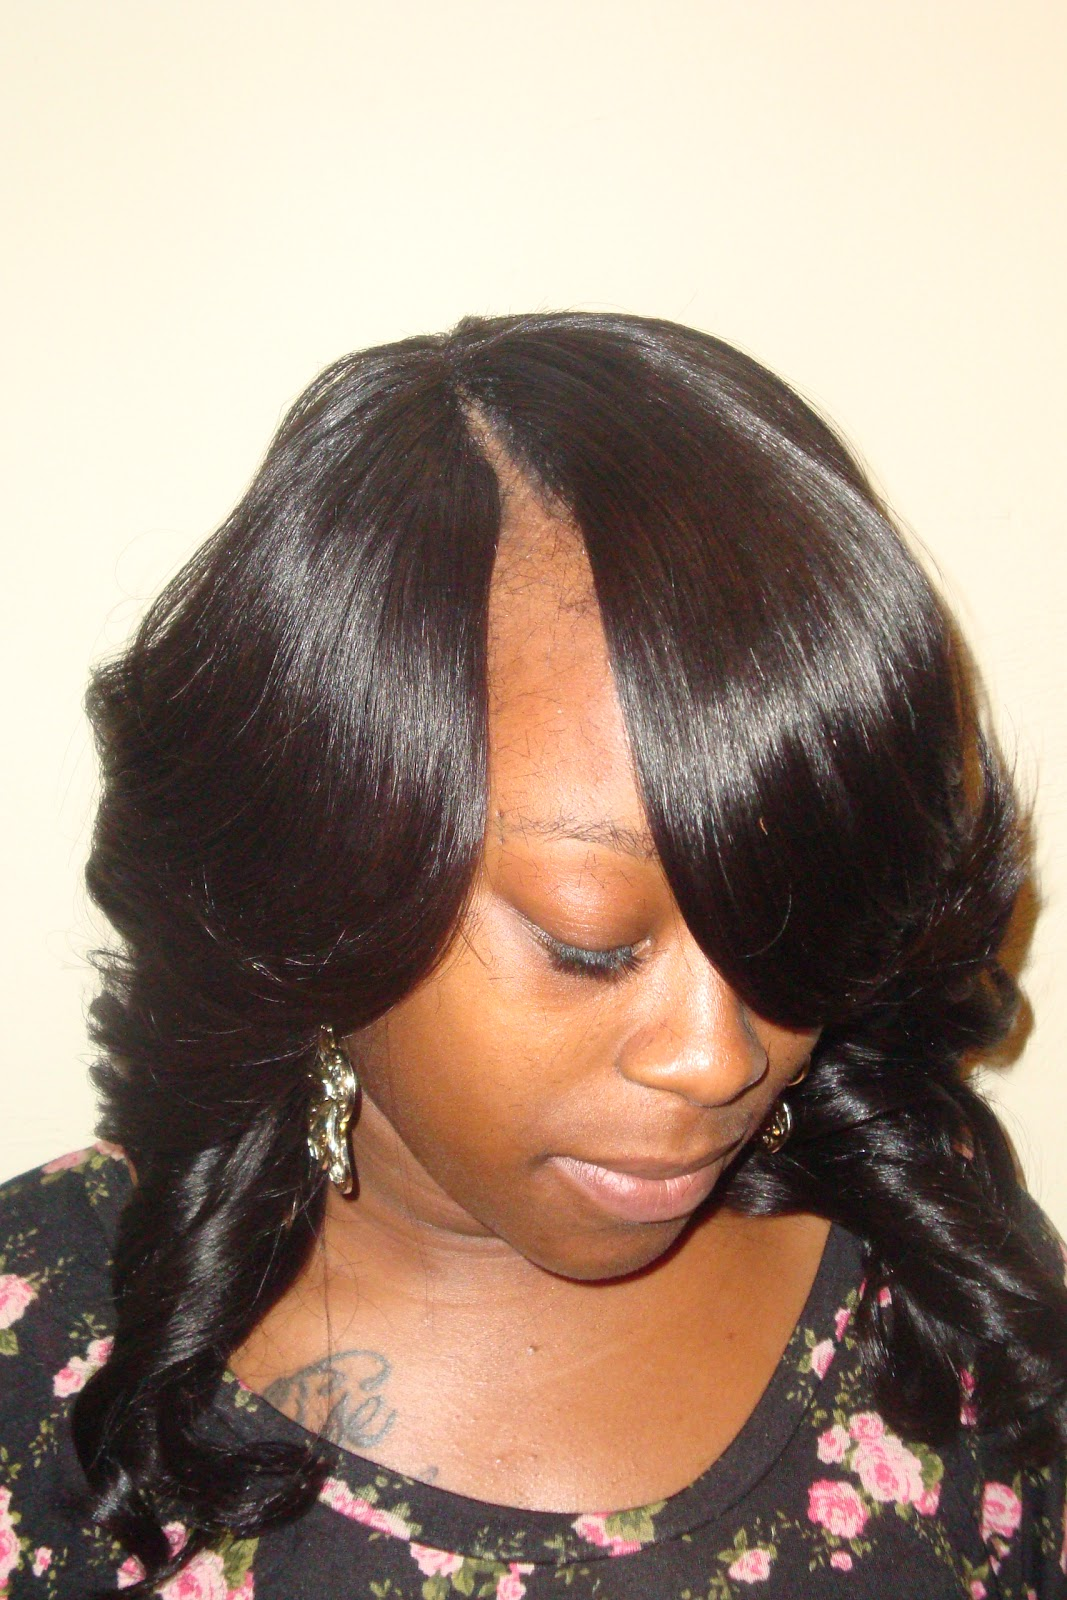 Invisible Part Sew In Curly Hair Brazilian curly hair Sew-in